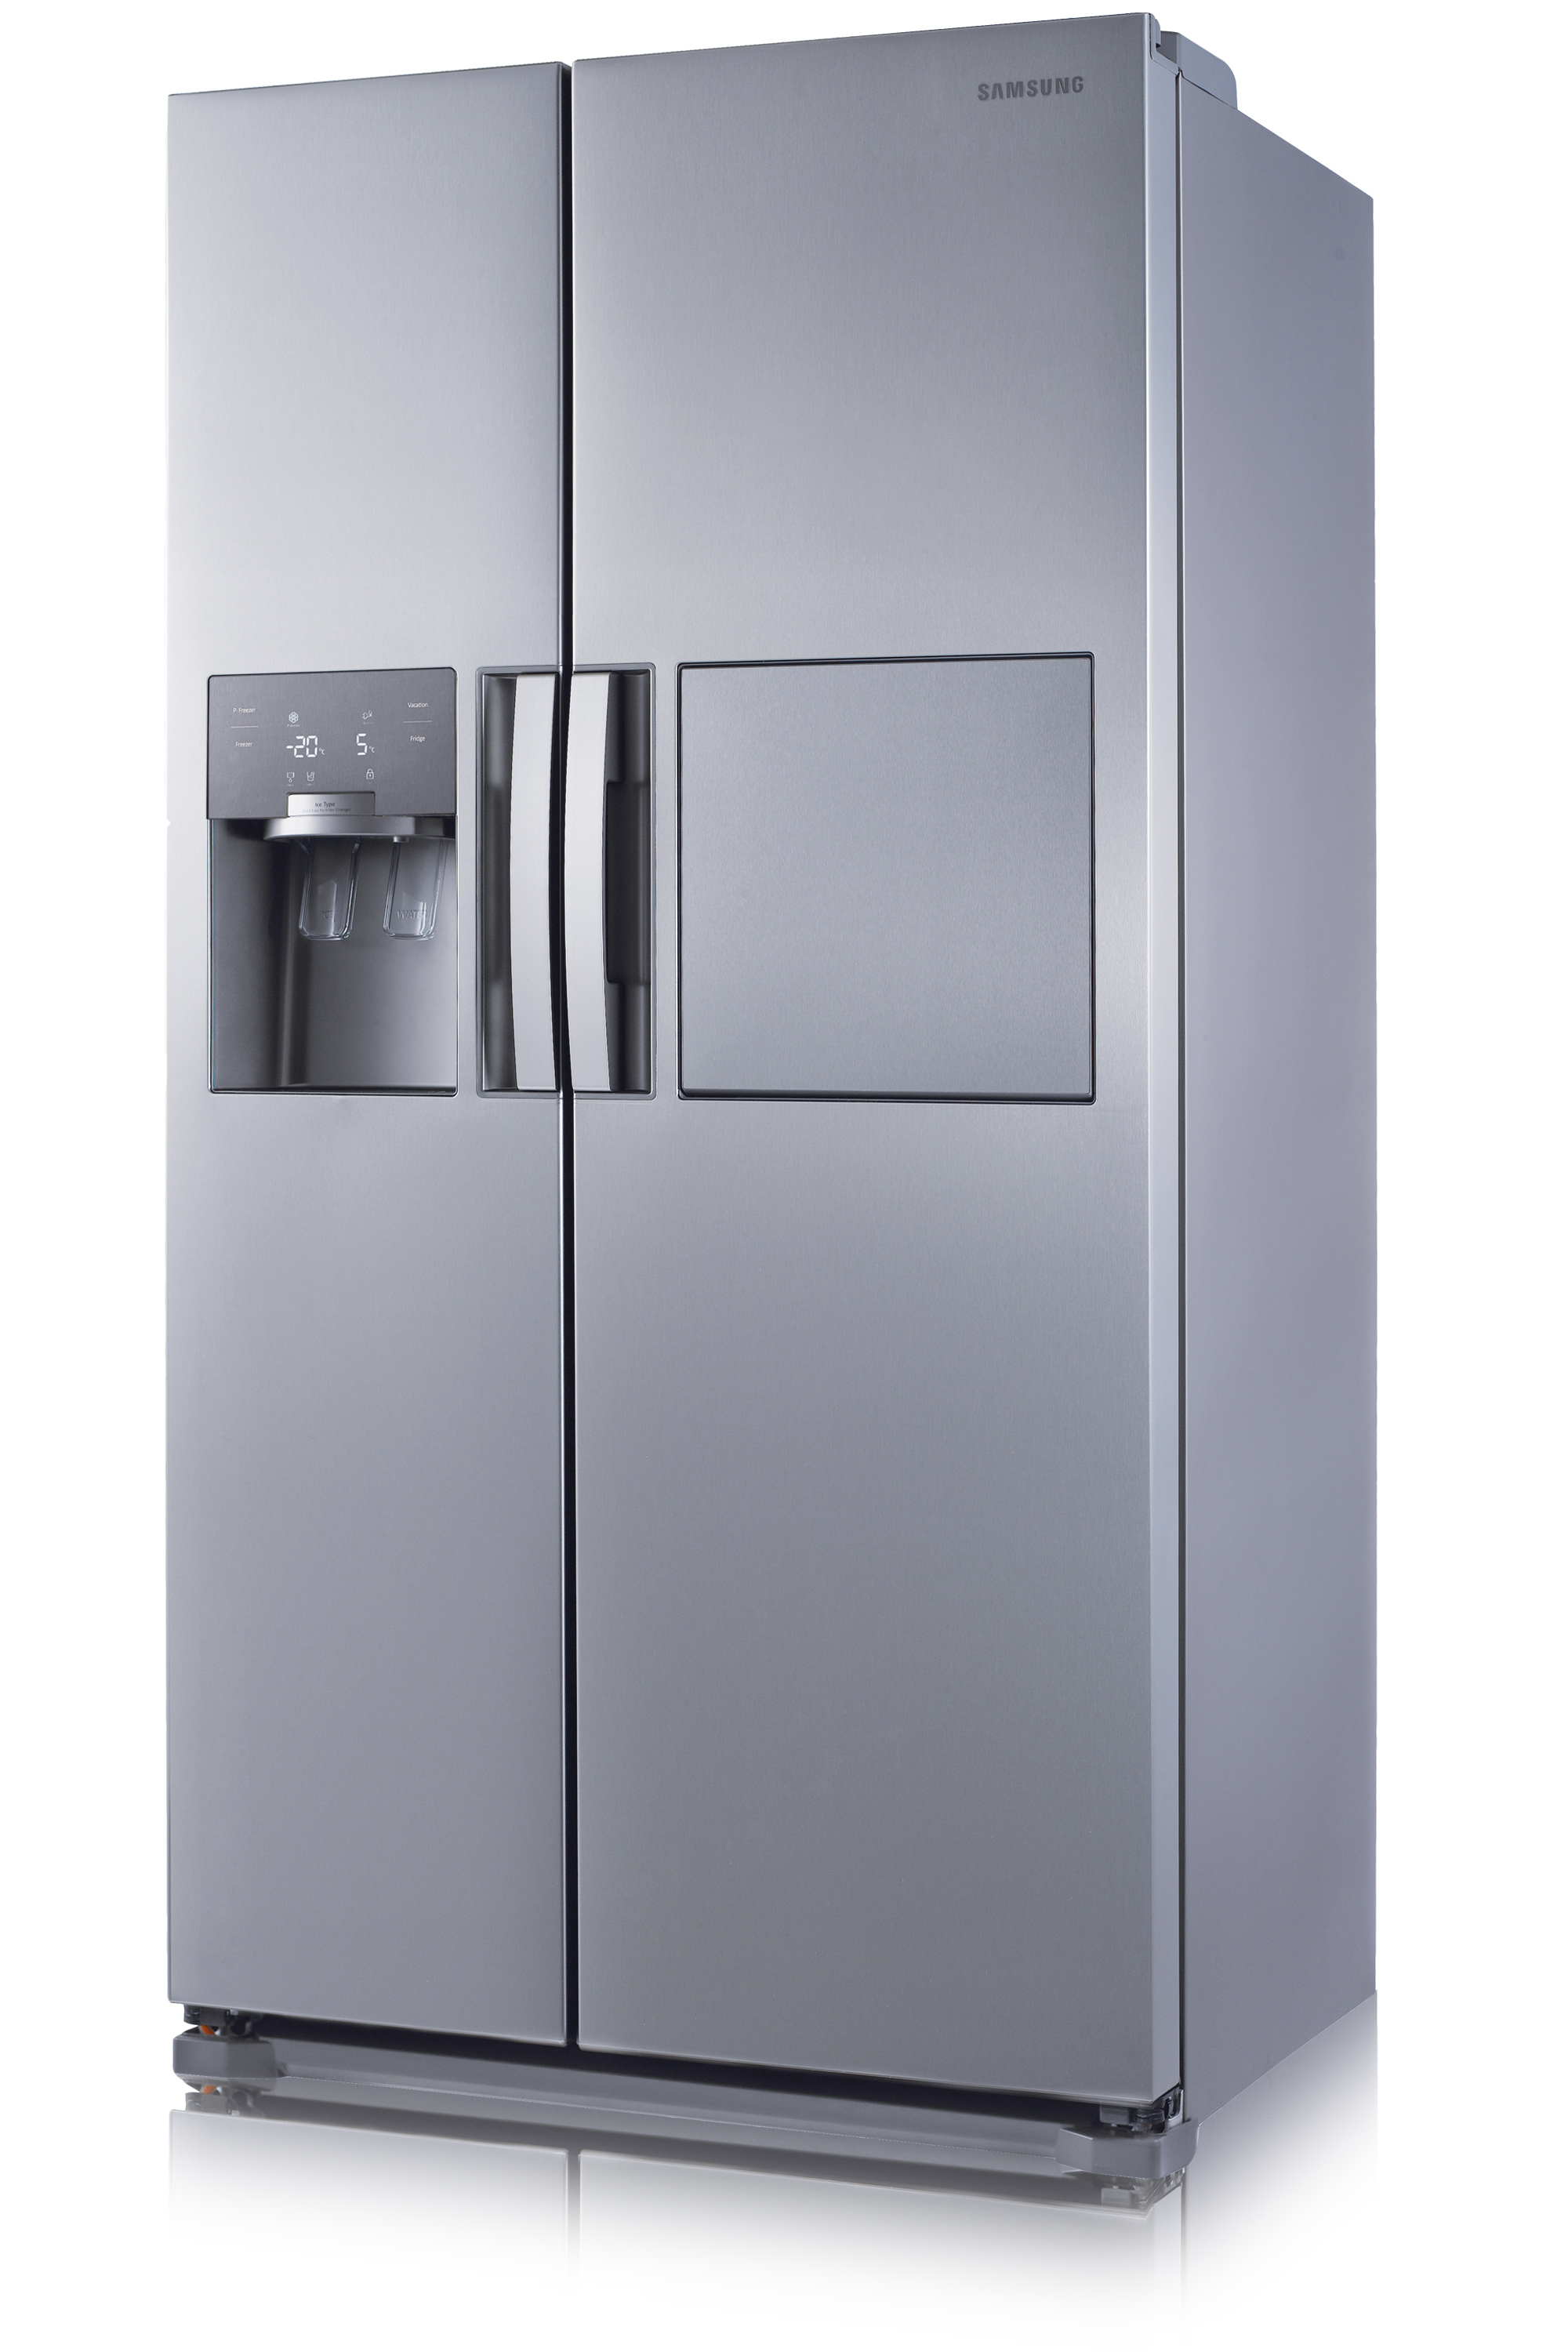 Samsung Frigo Side By Side - RS7778FHCSR - 178,9cm - A++ | Art & Craft